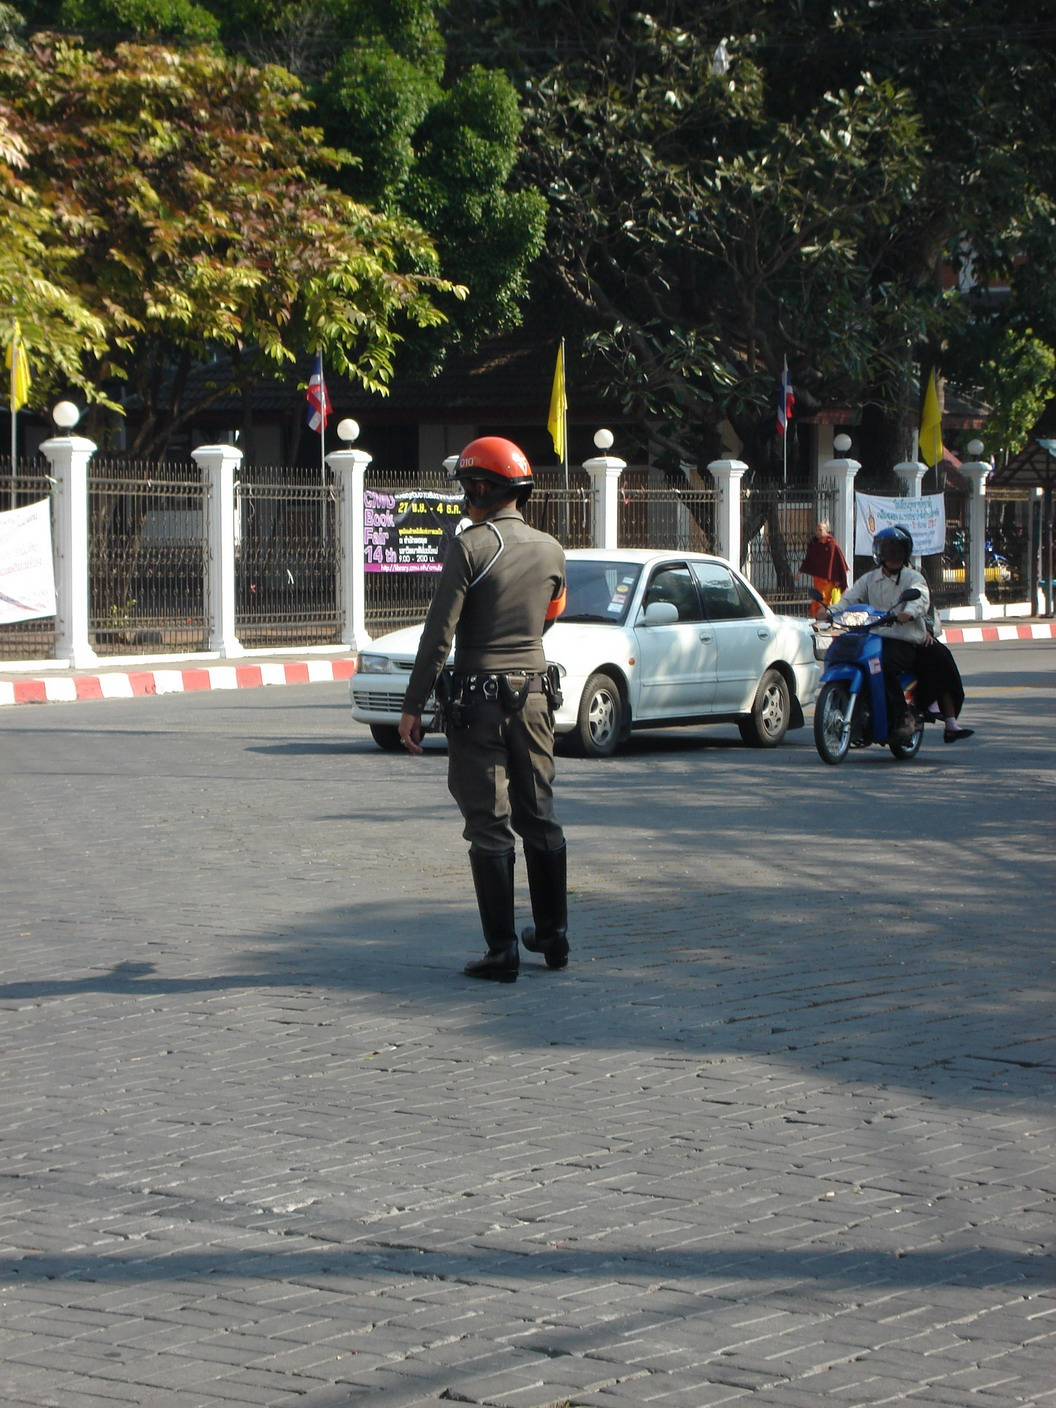 My run in with the Thai Police